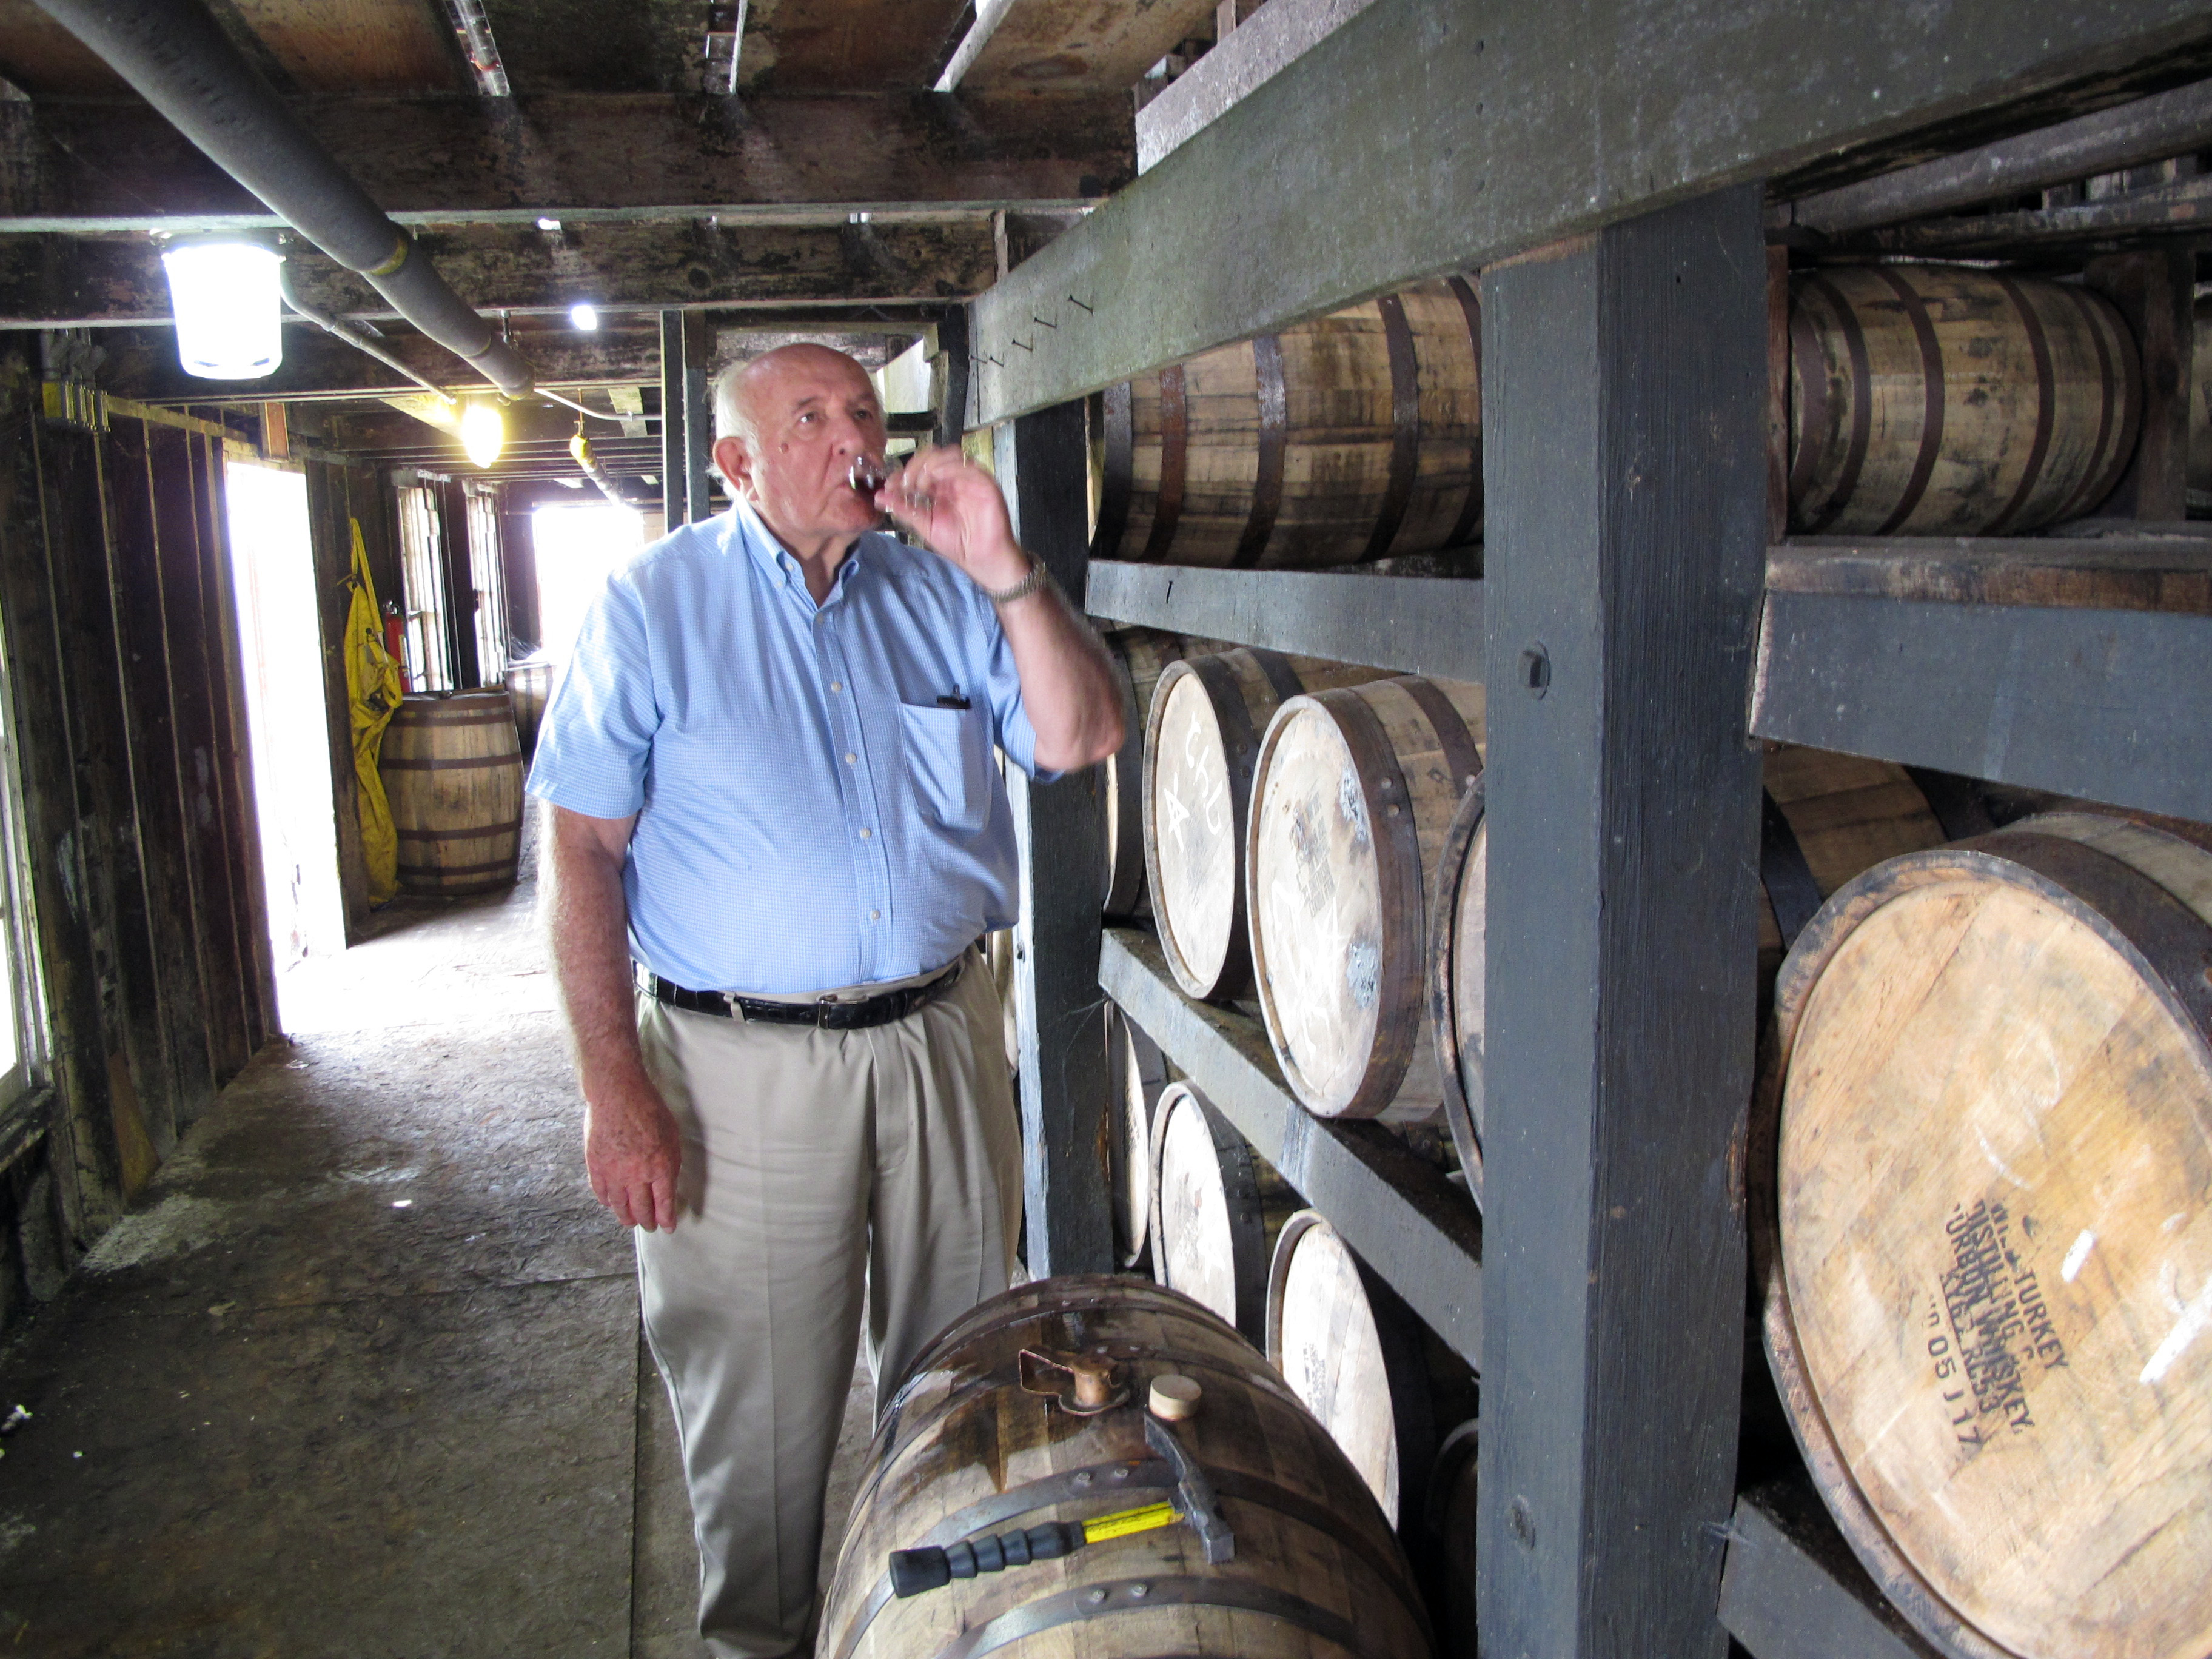 Wild Turkey master distiller Jimmy Russell takes a sip of bourbon drawn from the barrel at a warehouse near Lawrenceburg, Ky. on Aug. 22, 2014.